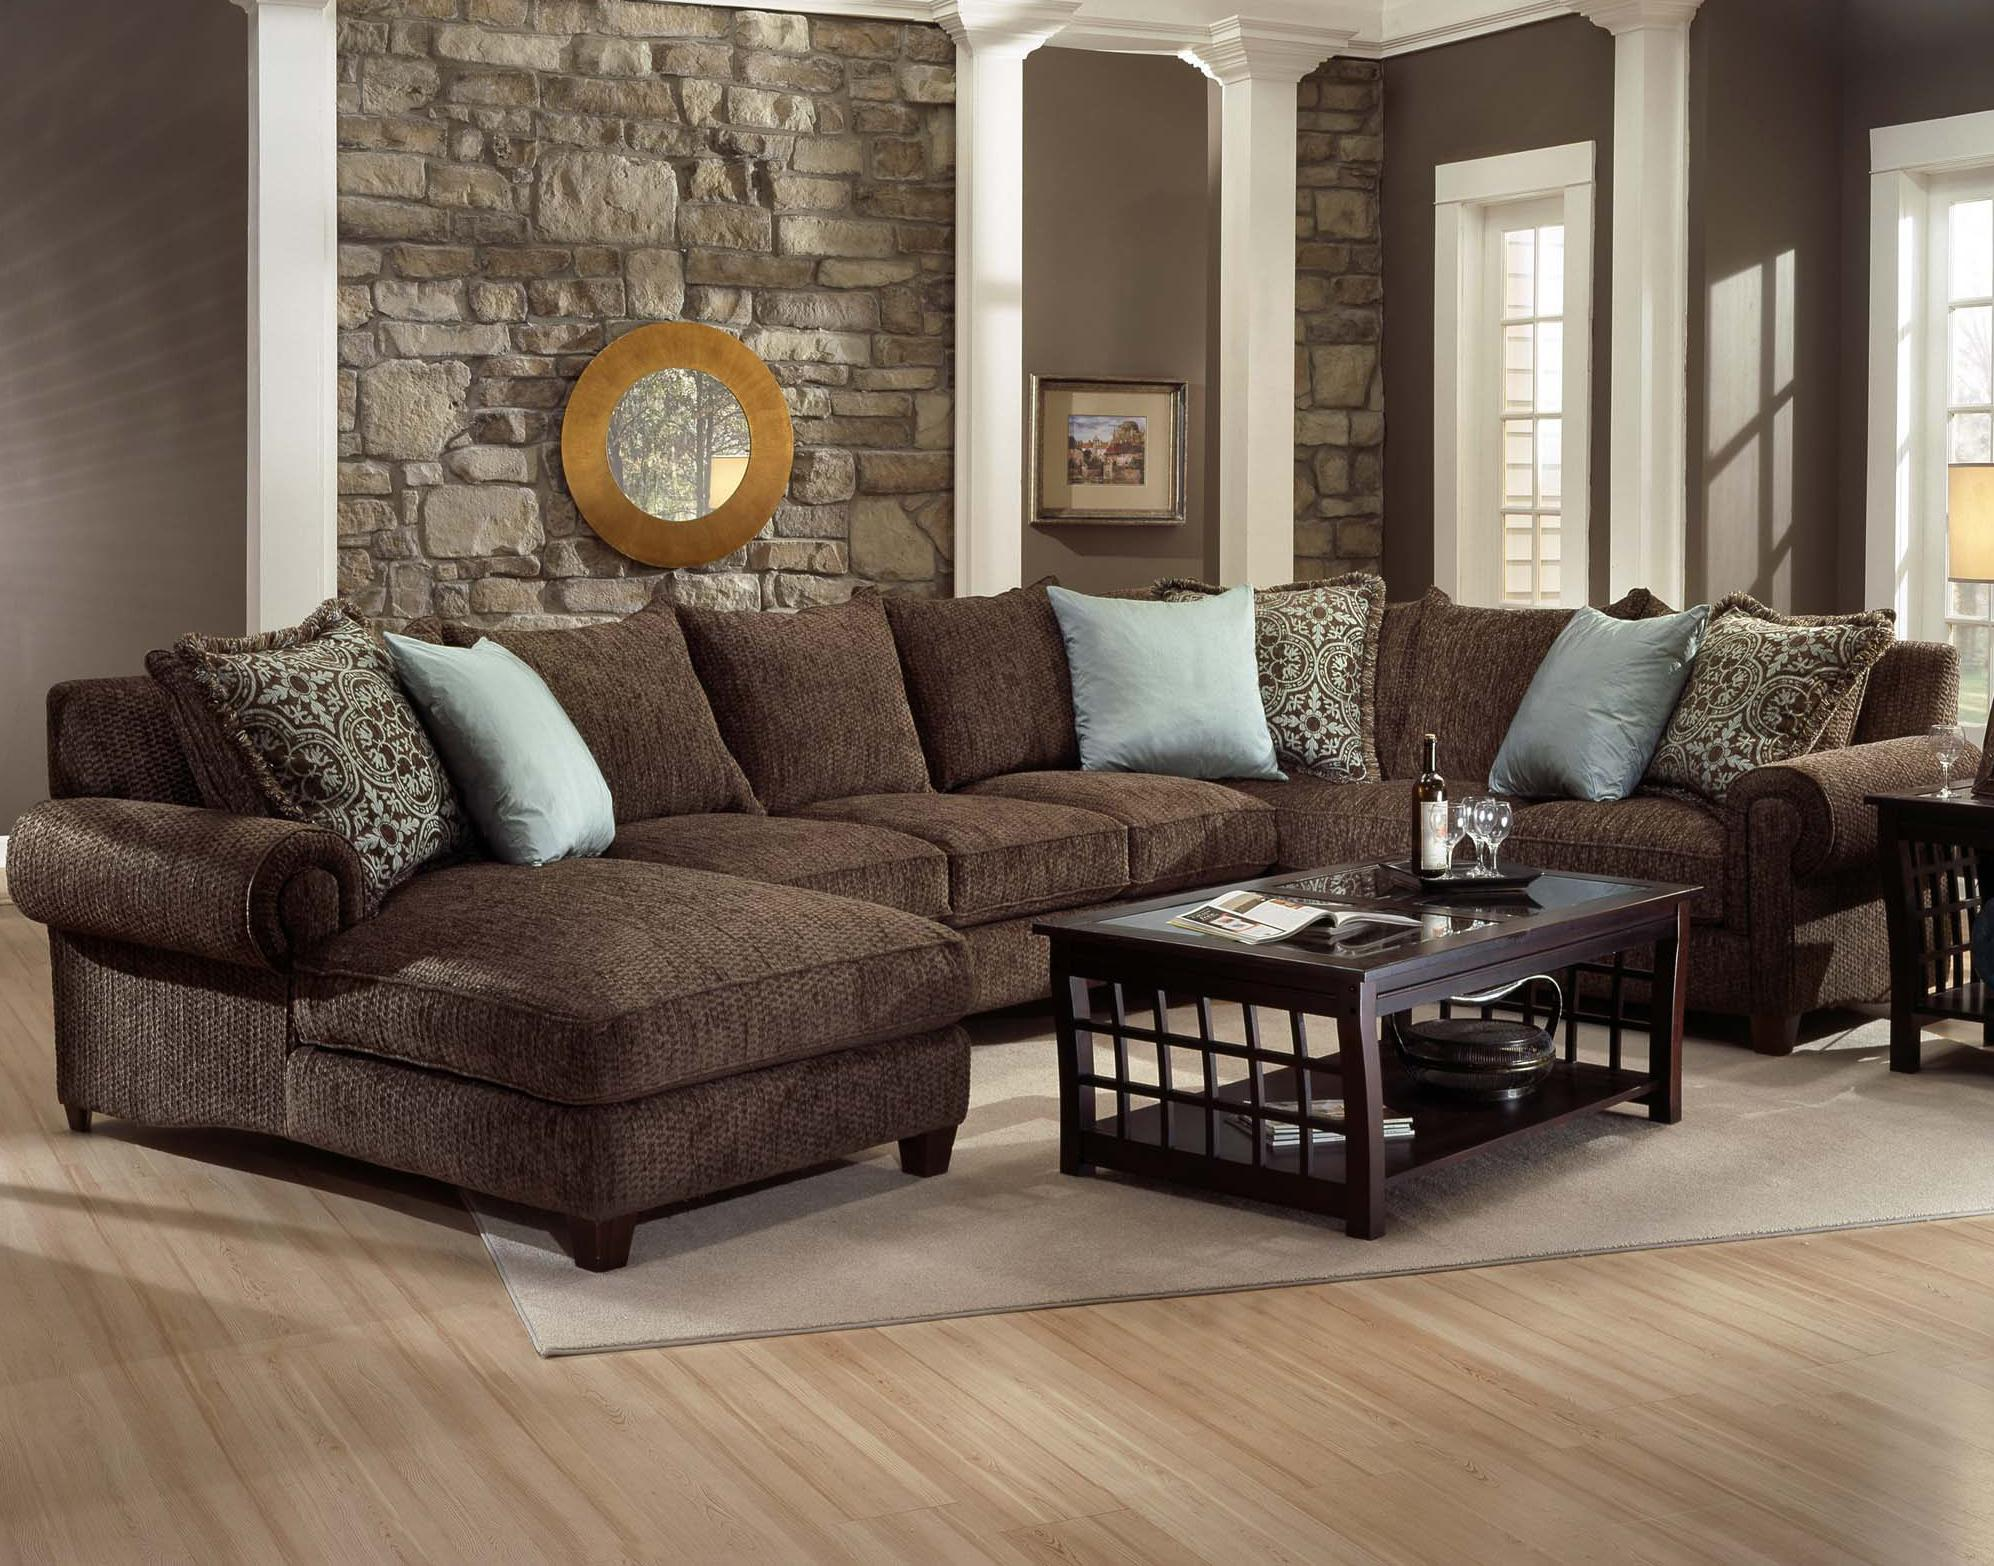 Beautiful sofa sectionals for home interior design with leather sectional sofa and sectional sleeper sofa